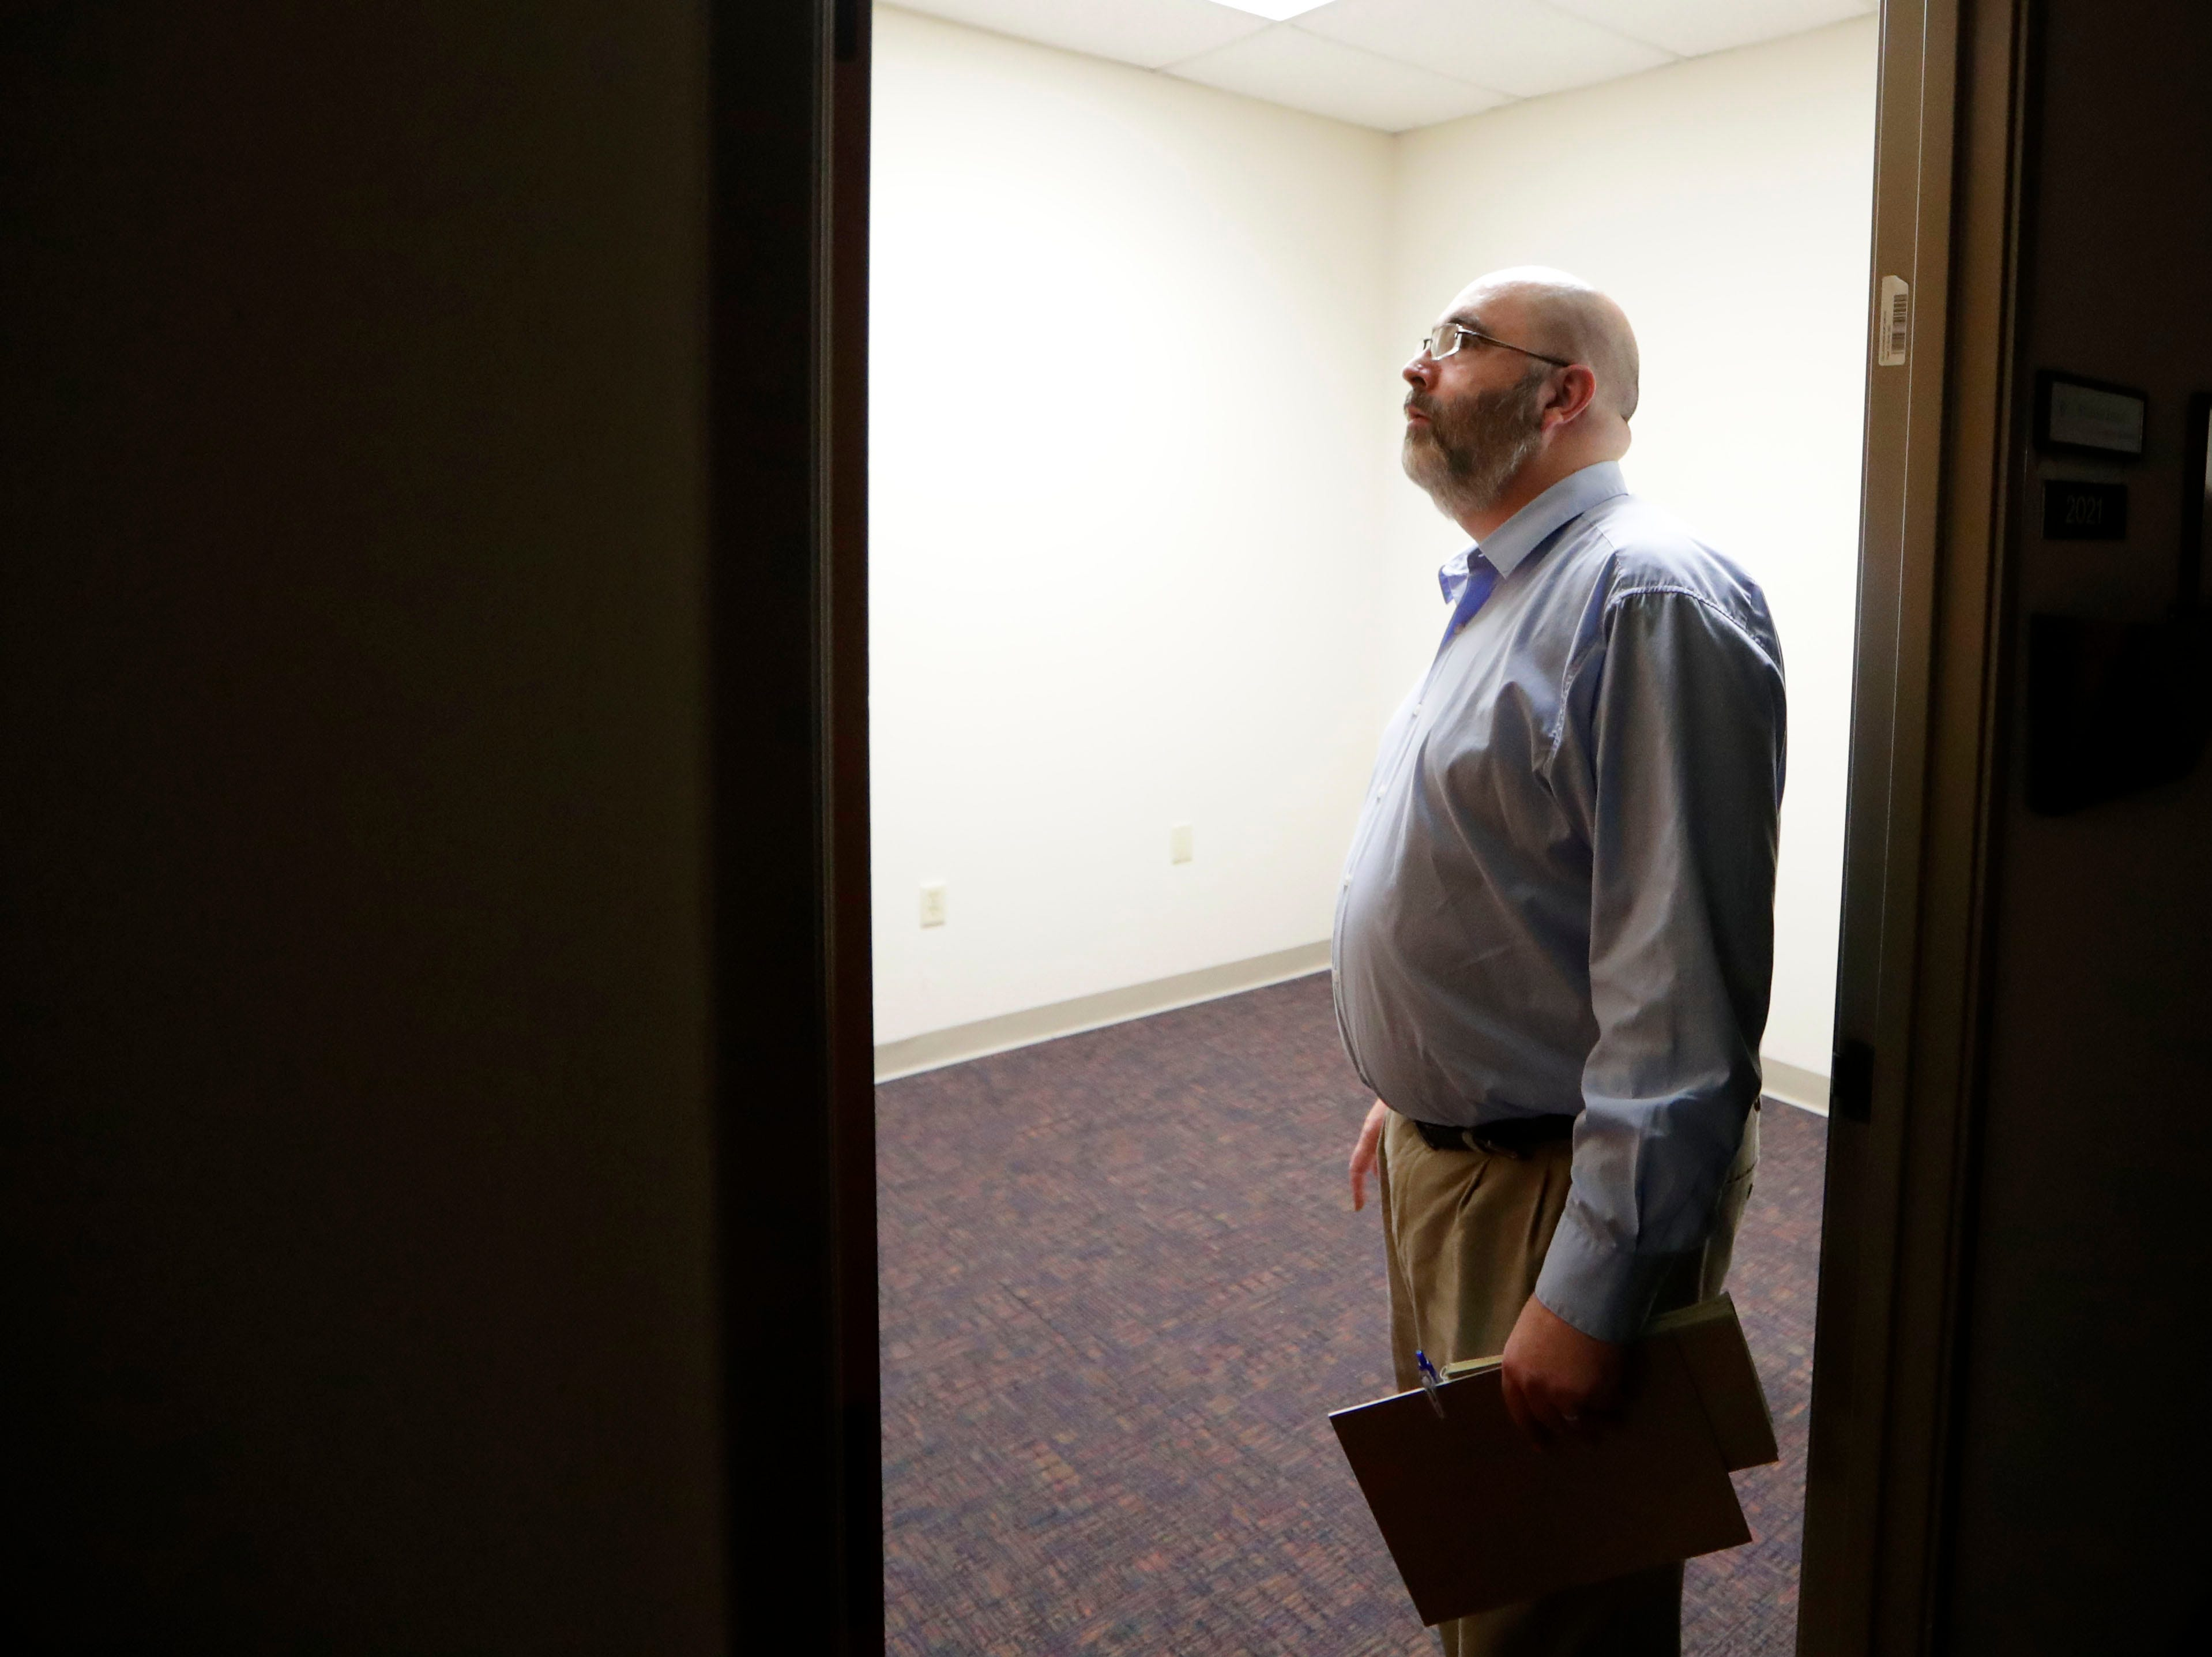 Robert Culverhouse, who works with the city's real estate department, looks at a vacant office inside the Norhtwood Centre Wednesday, May 8, 2019.